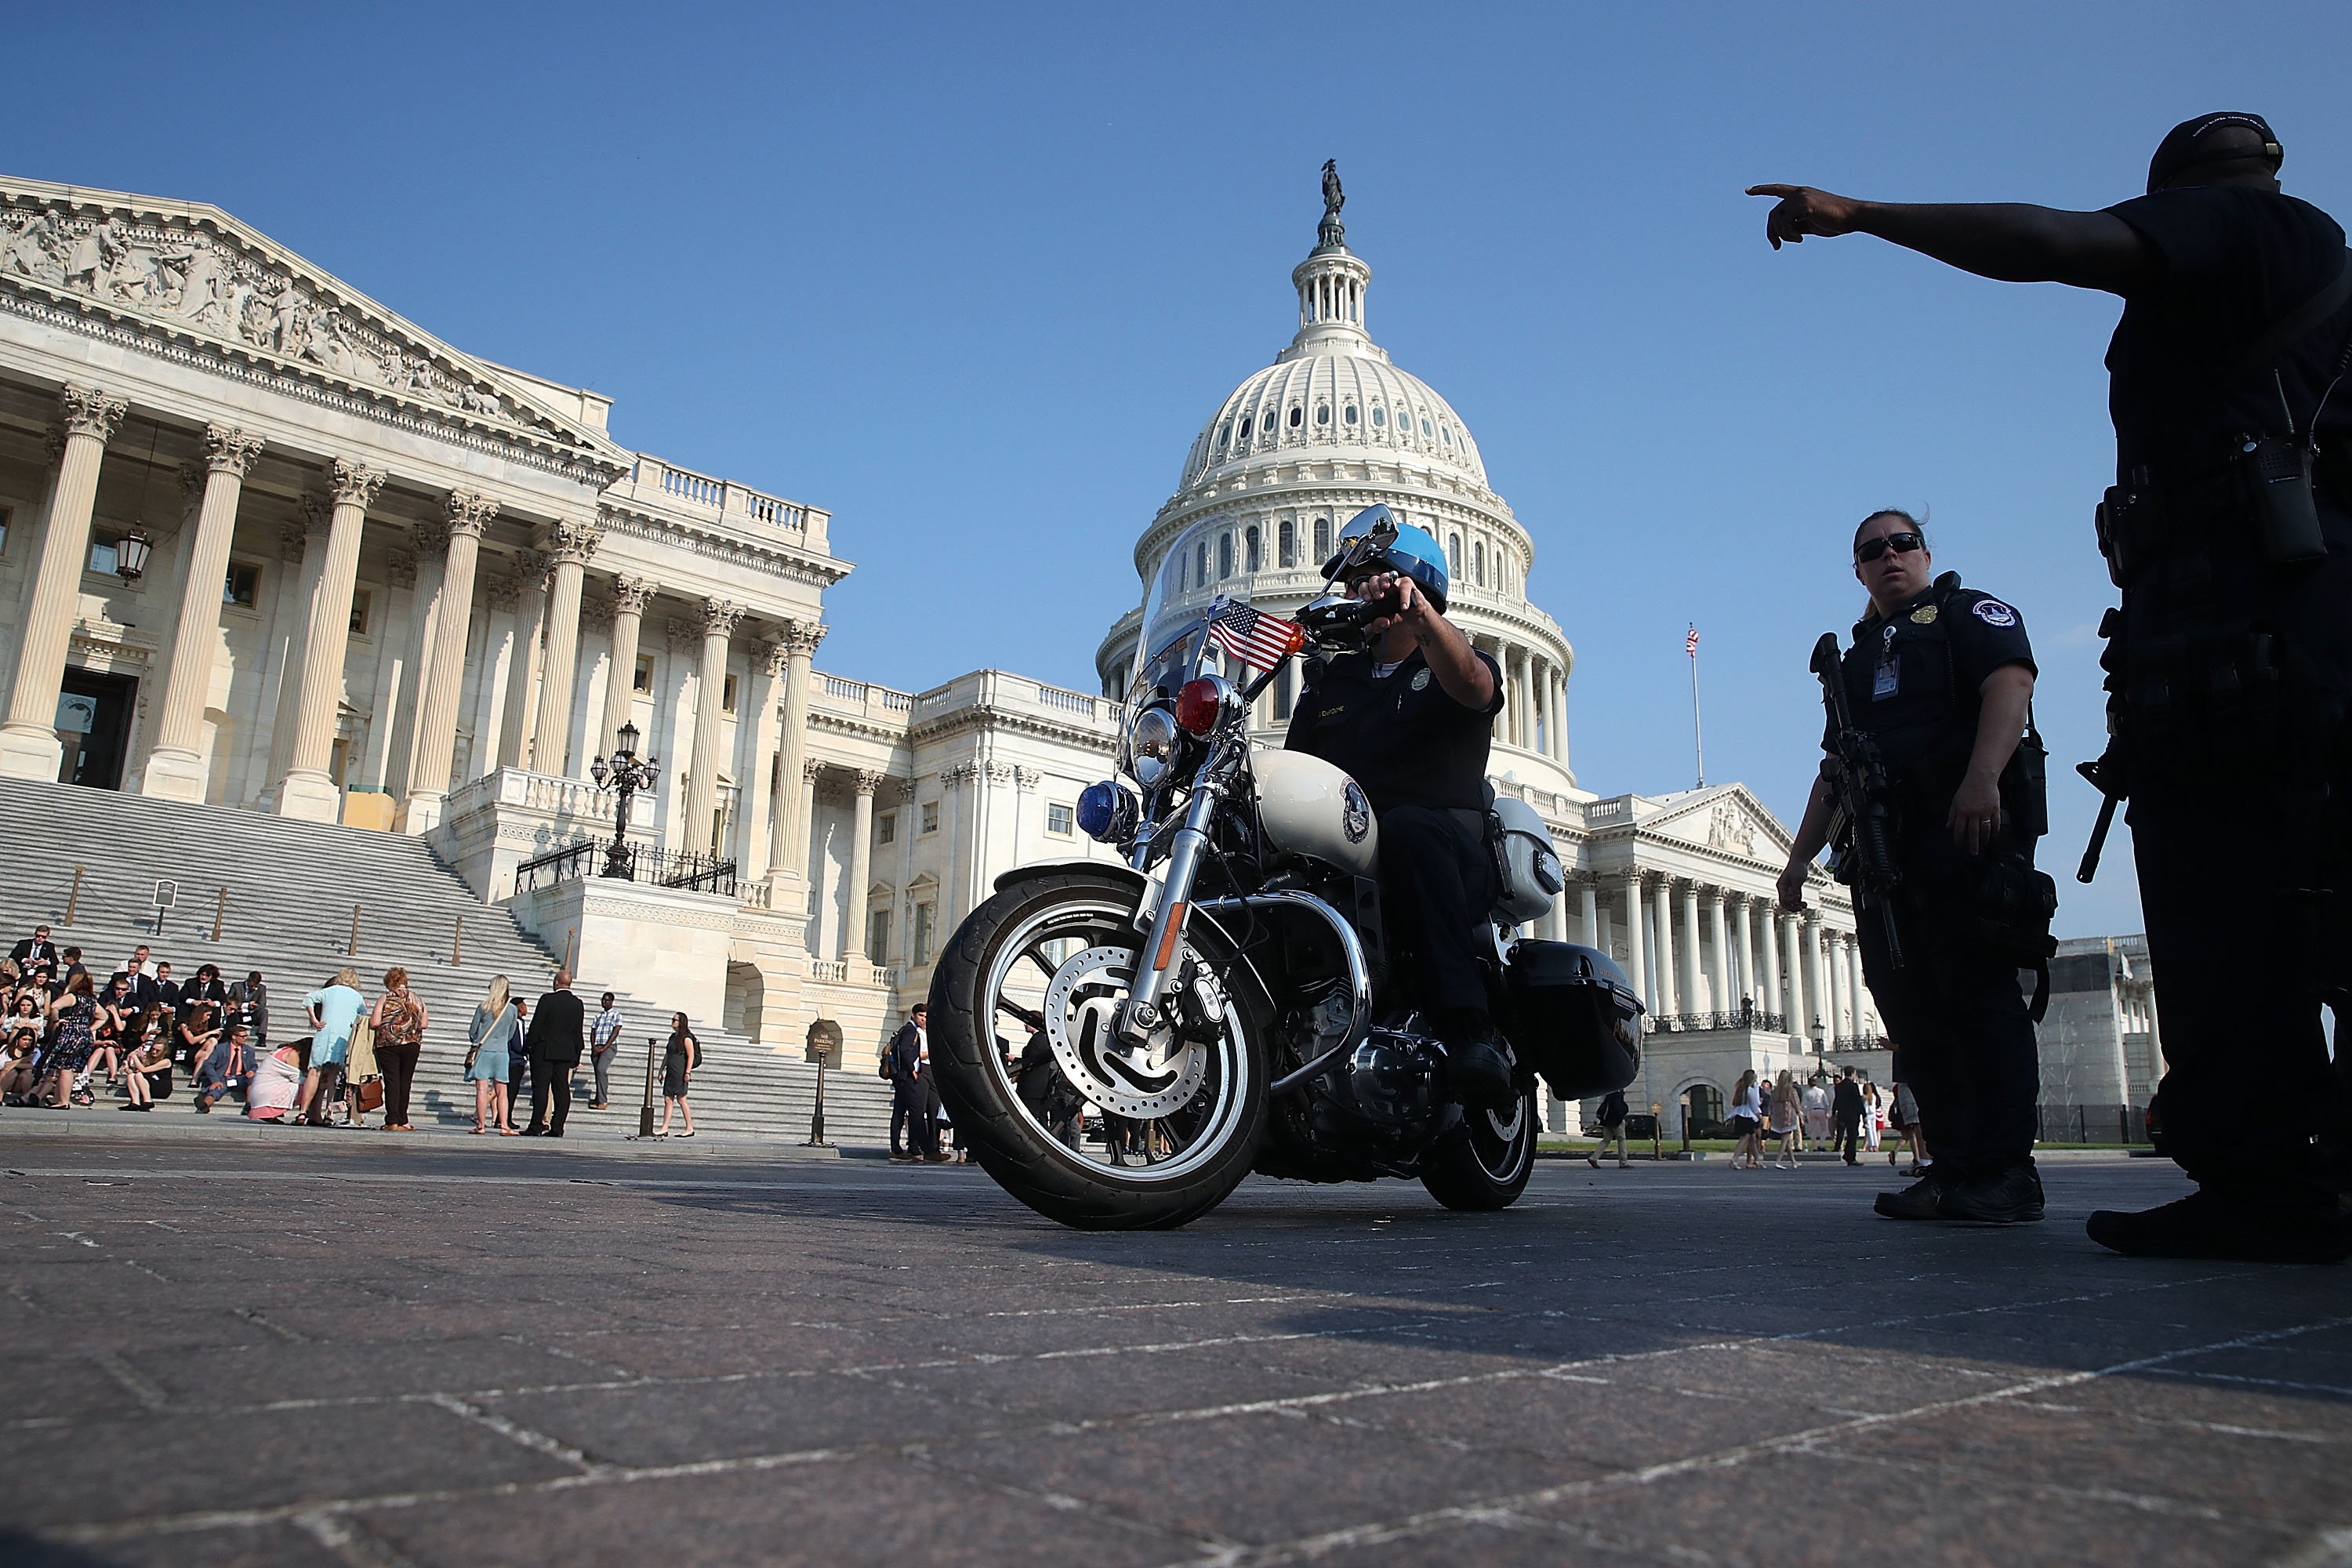 U.S. Capitol Police stand guard in front of the U.S. Capitol Building, on June 14, 2017, in Washington, DC.